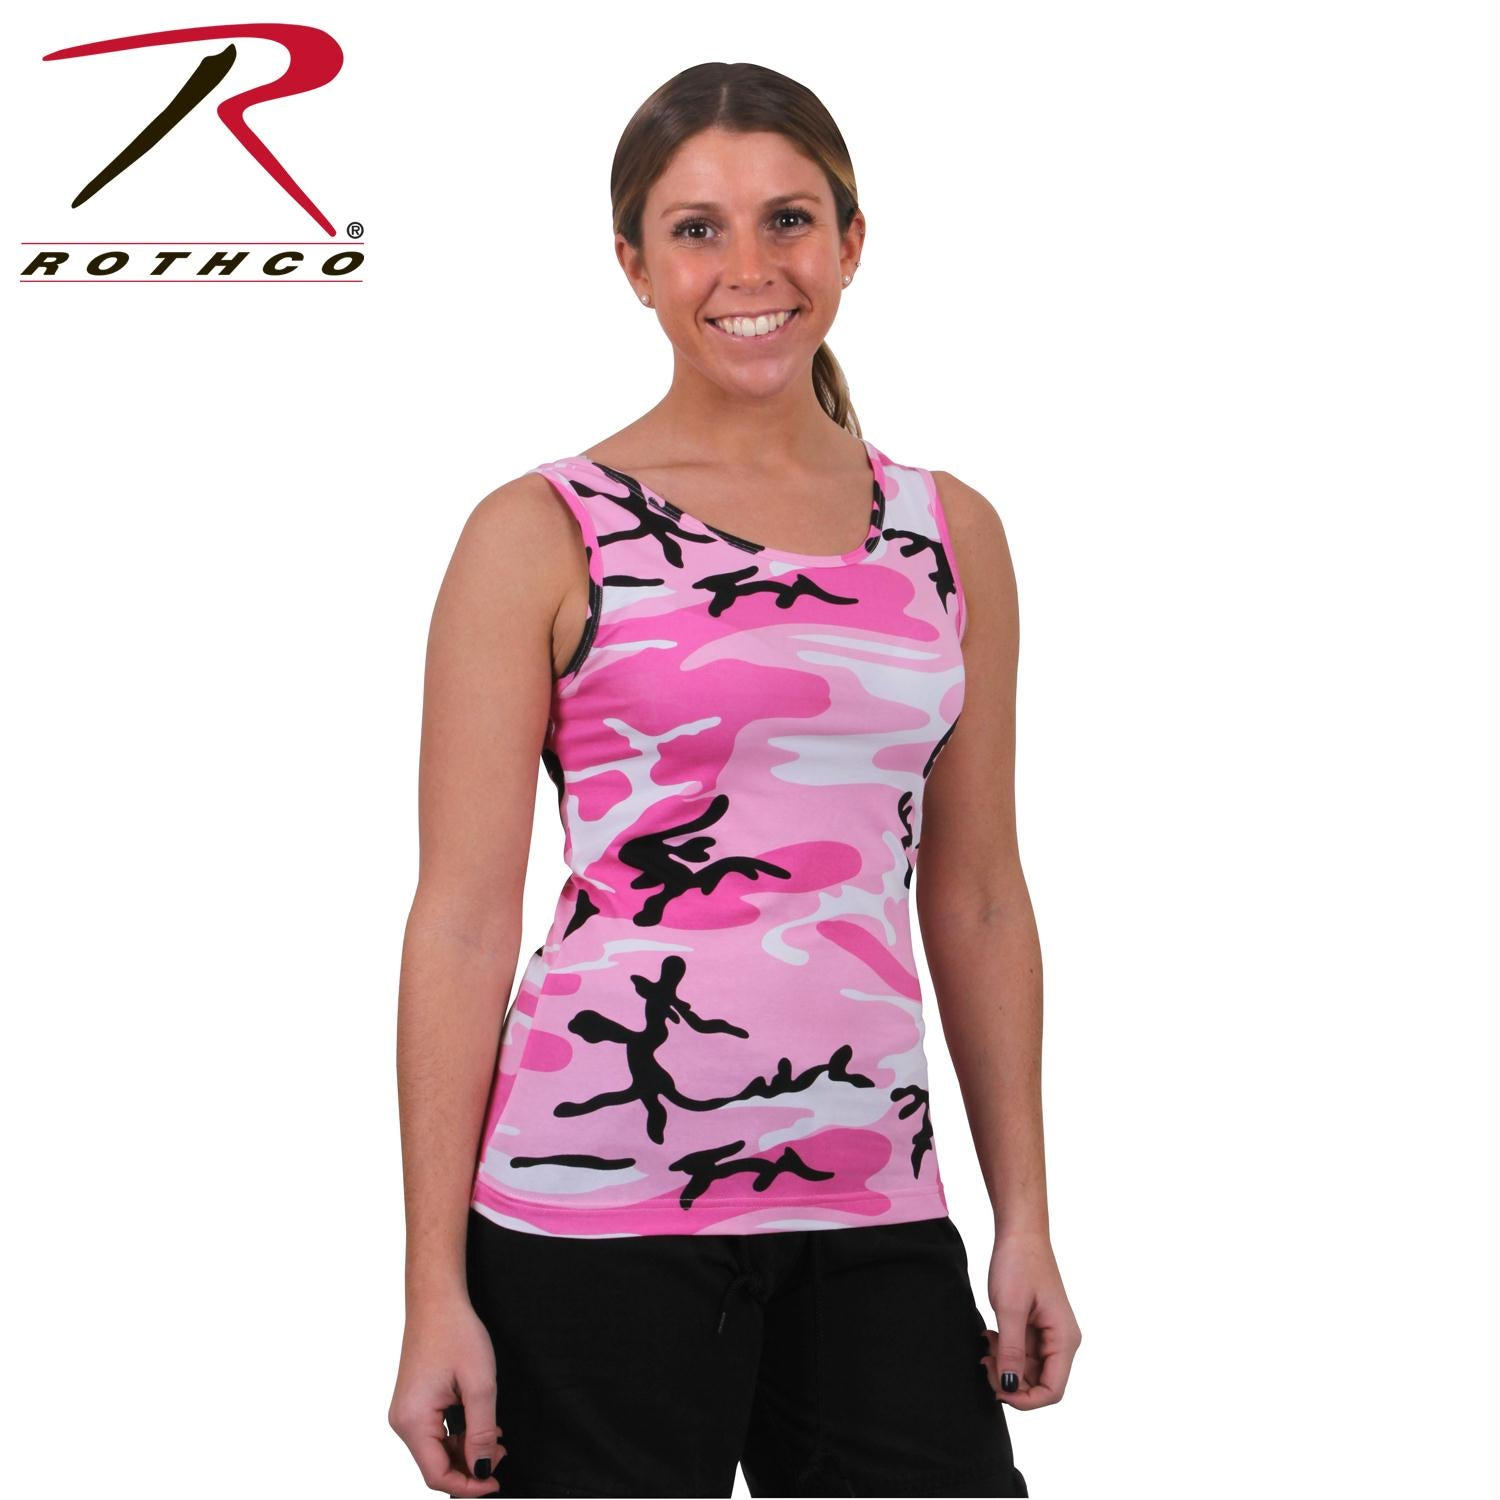 Rothco Womens Camo Stretch Tank Top - Pink Camo / M